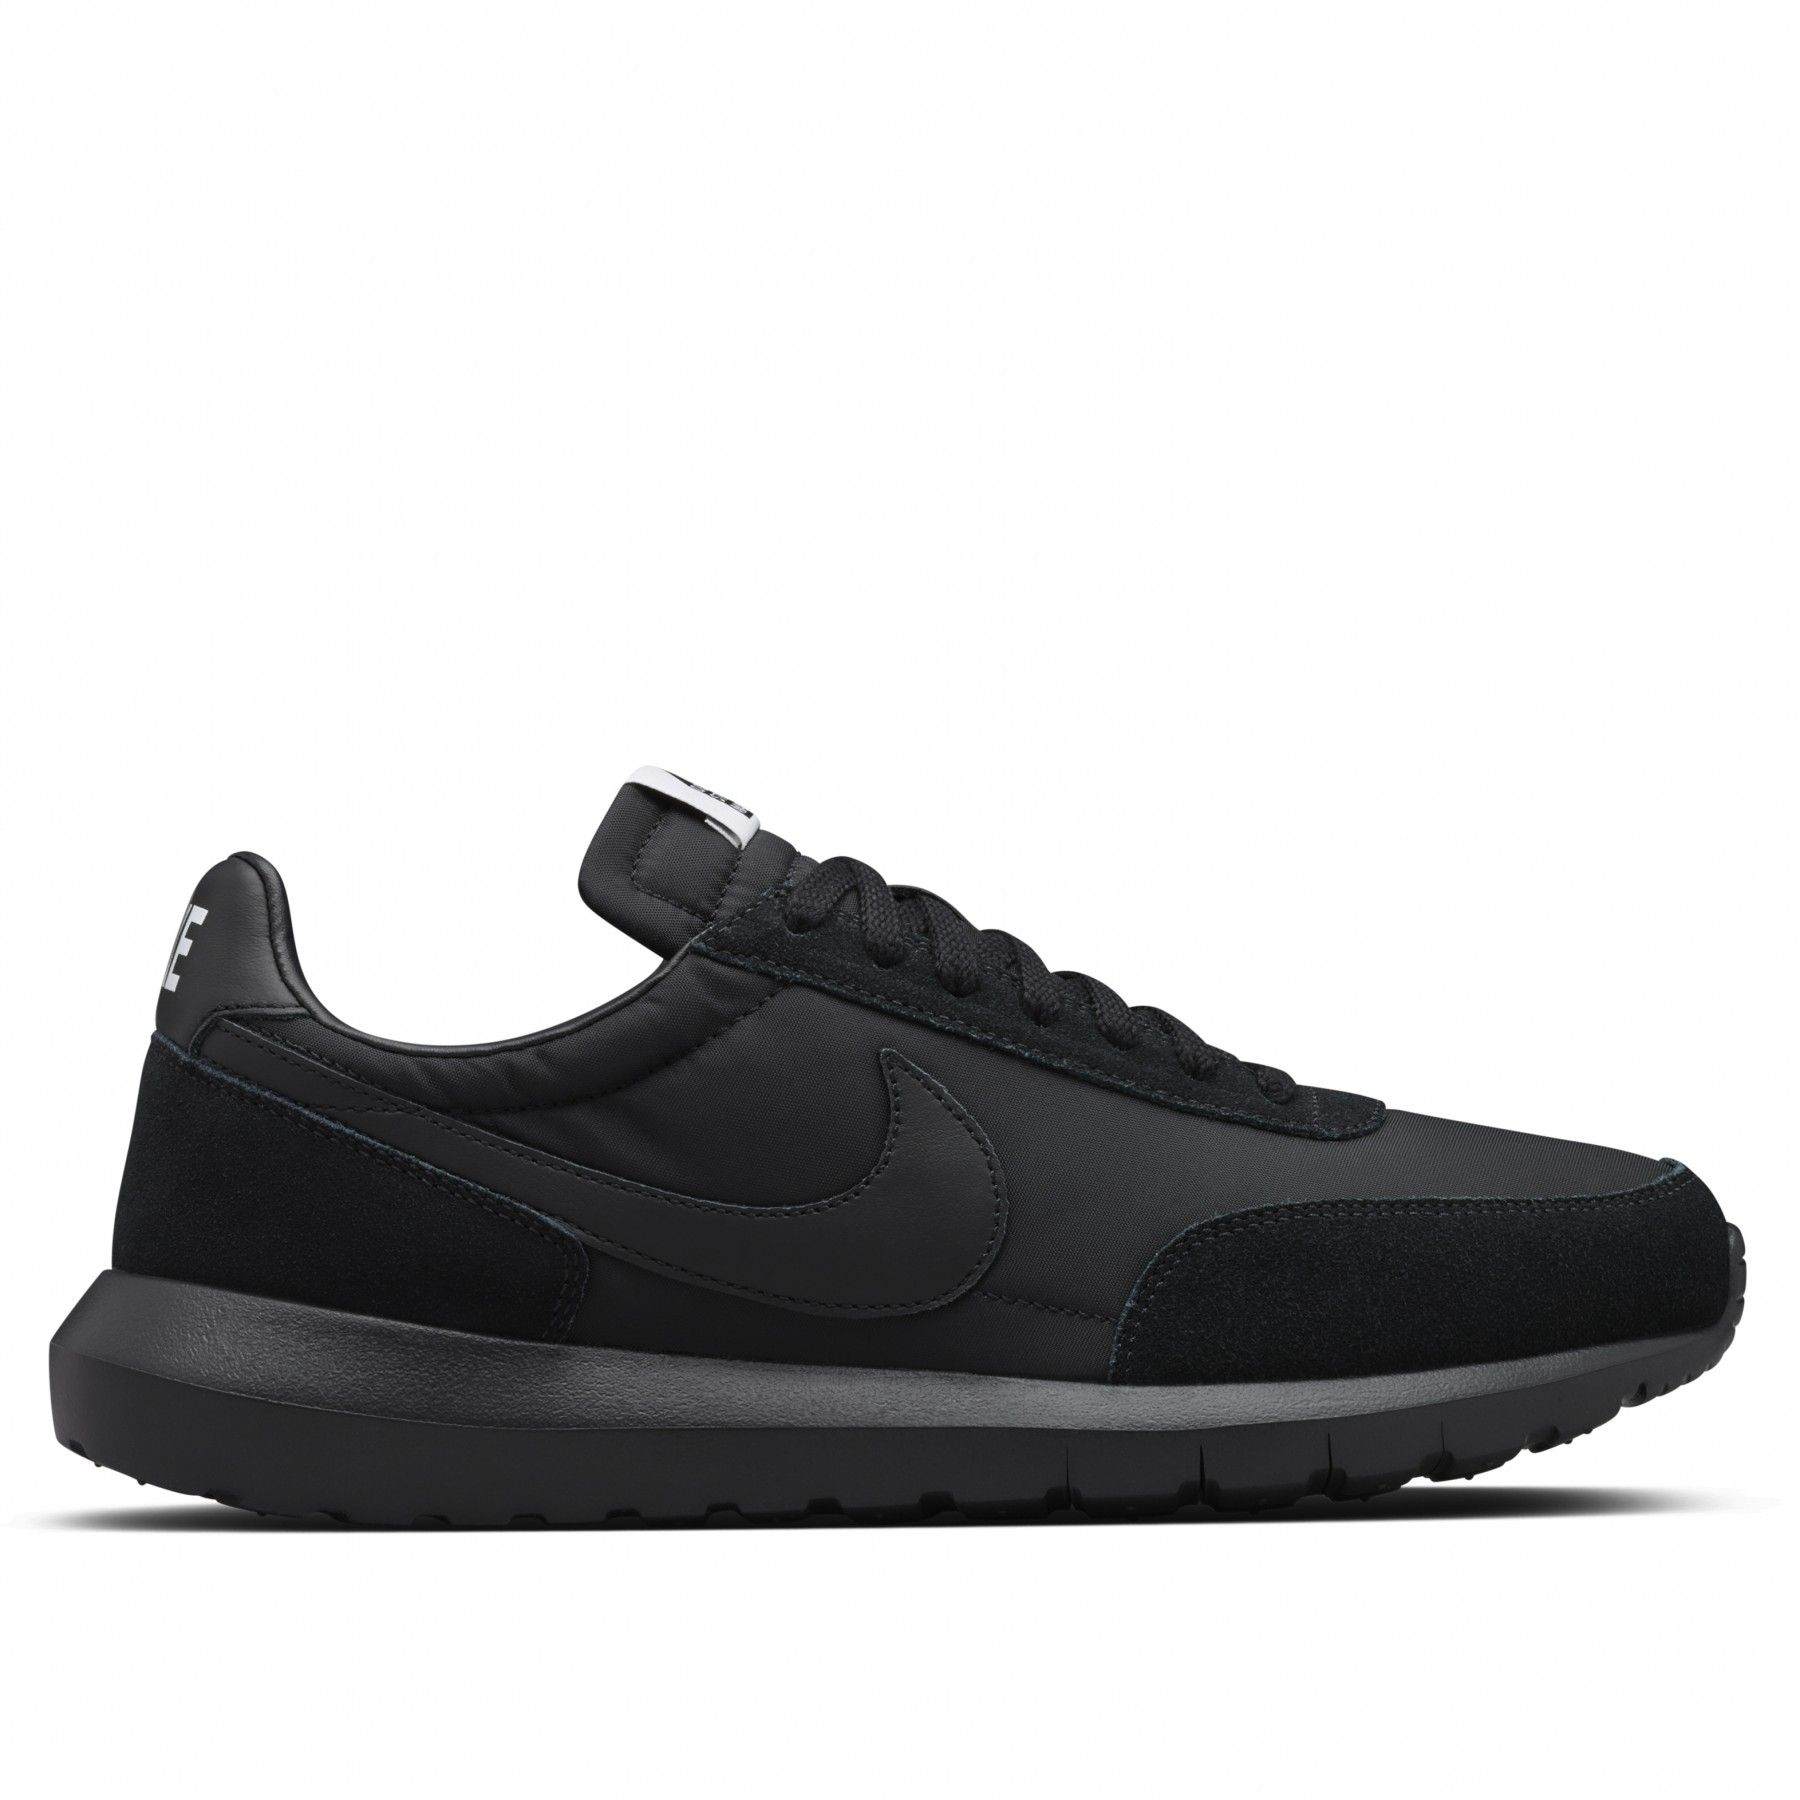 Did You Manage To Pick Up A Pair Of The NikeLab Roshe Daybreak x DSM?